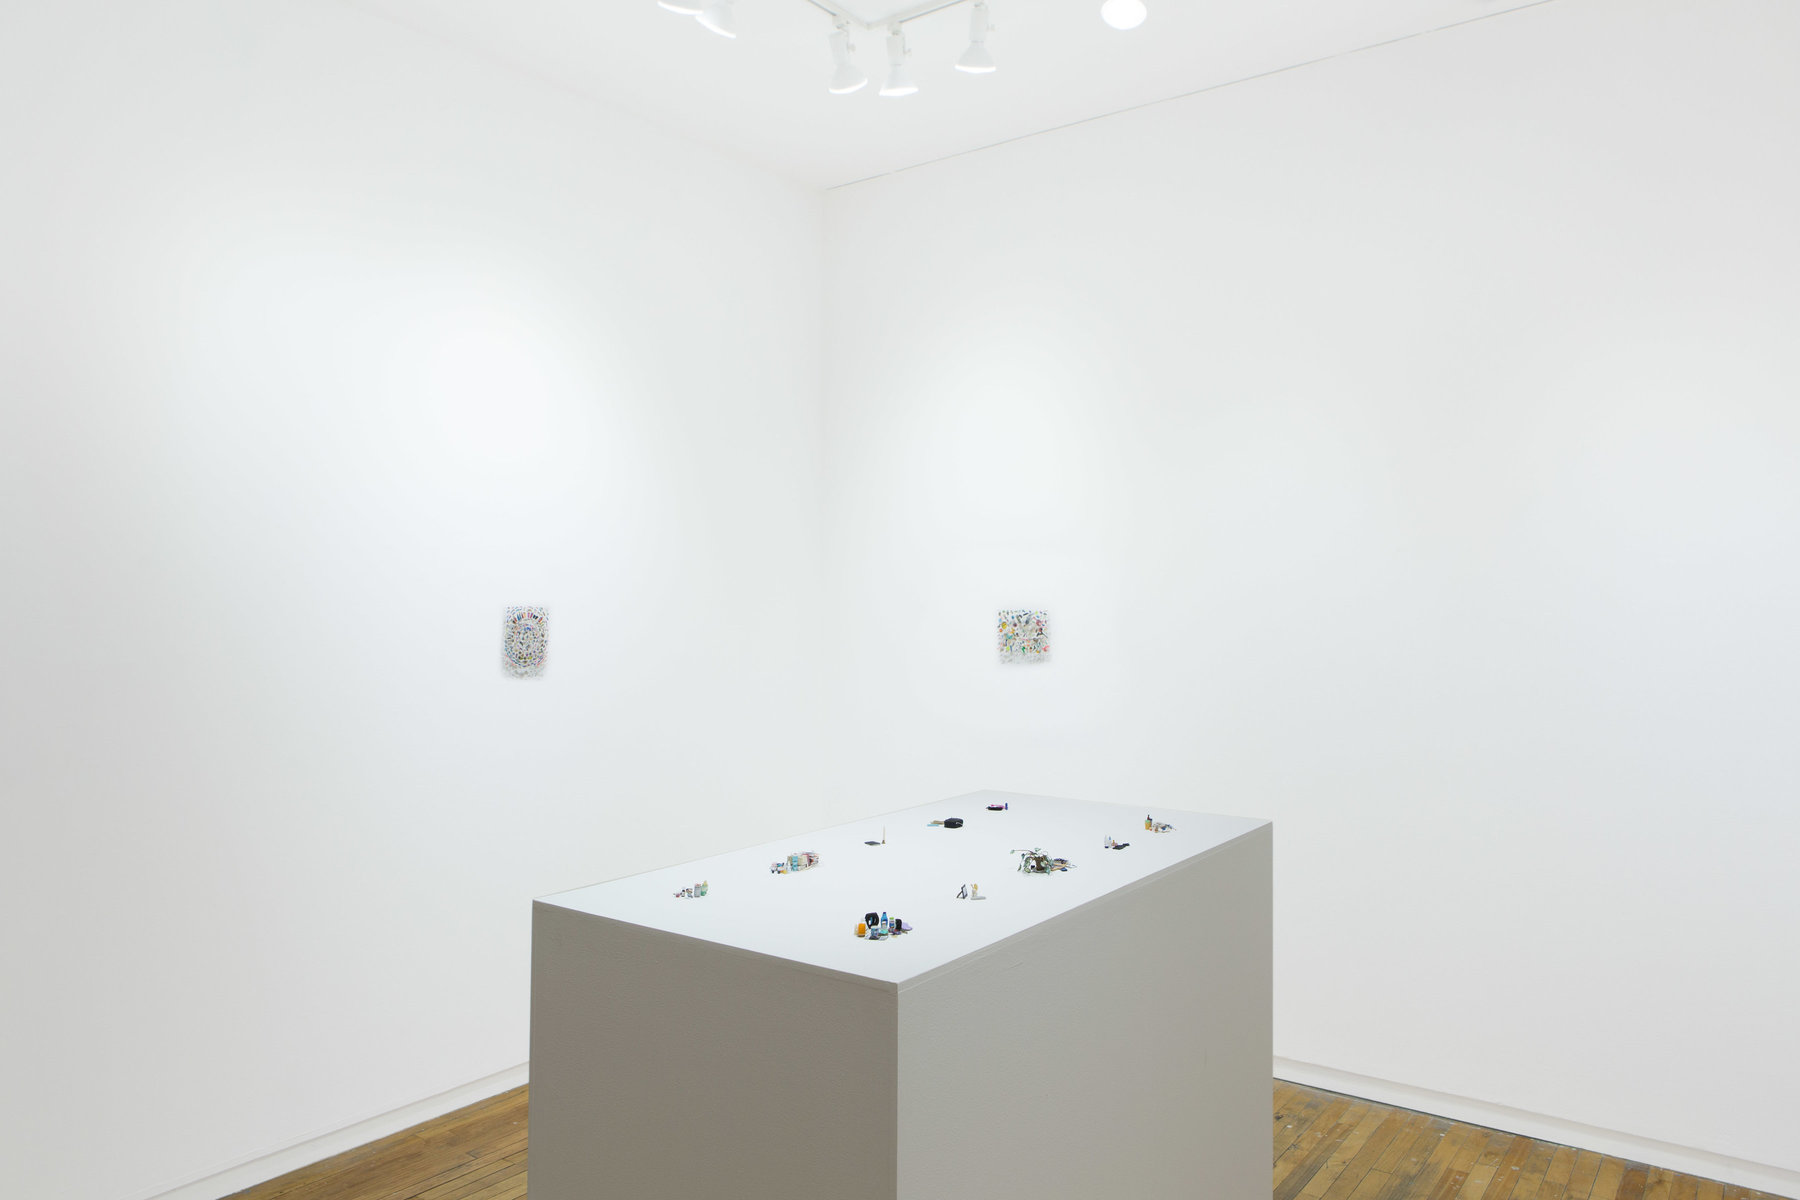 bedside table collections Installation view Andrew Rafacz Gallery